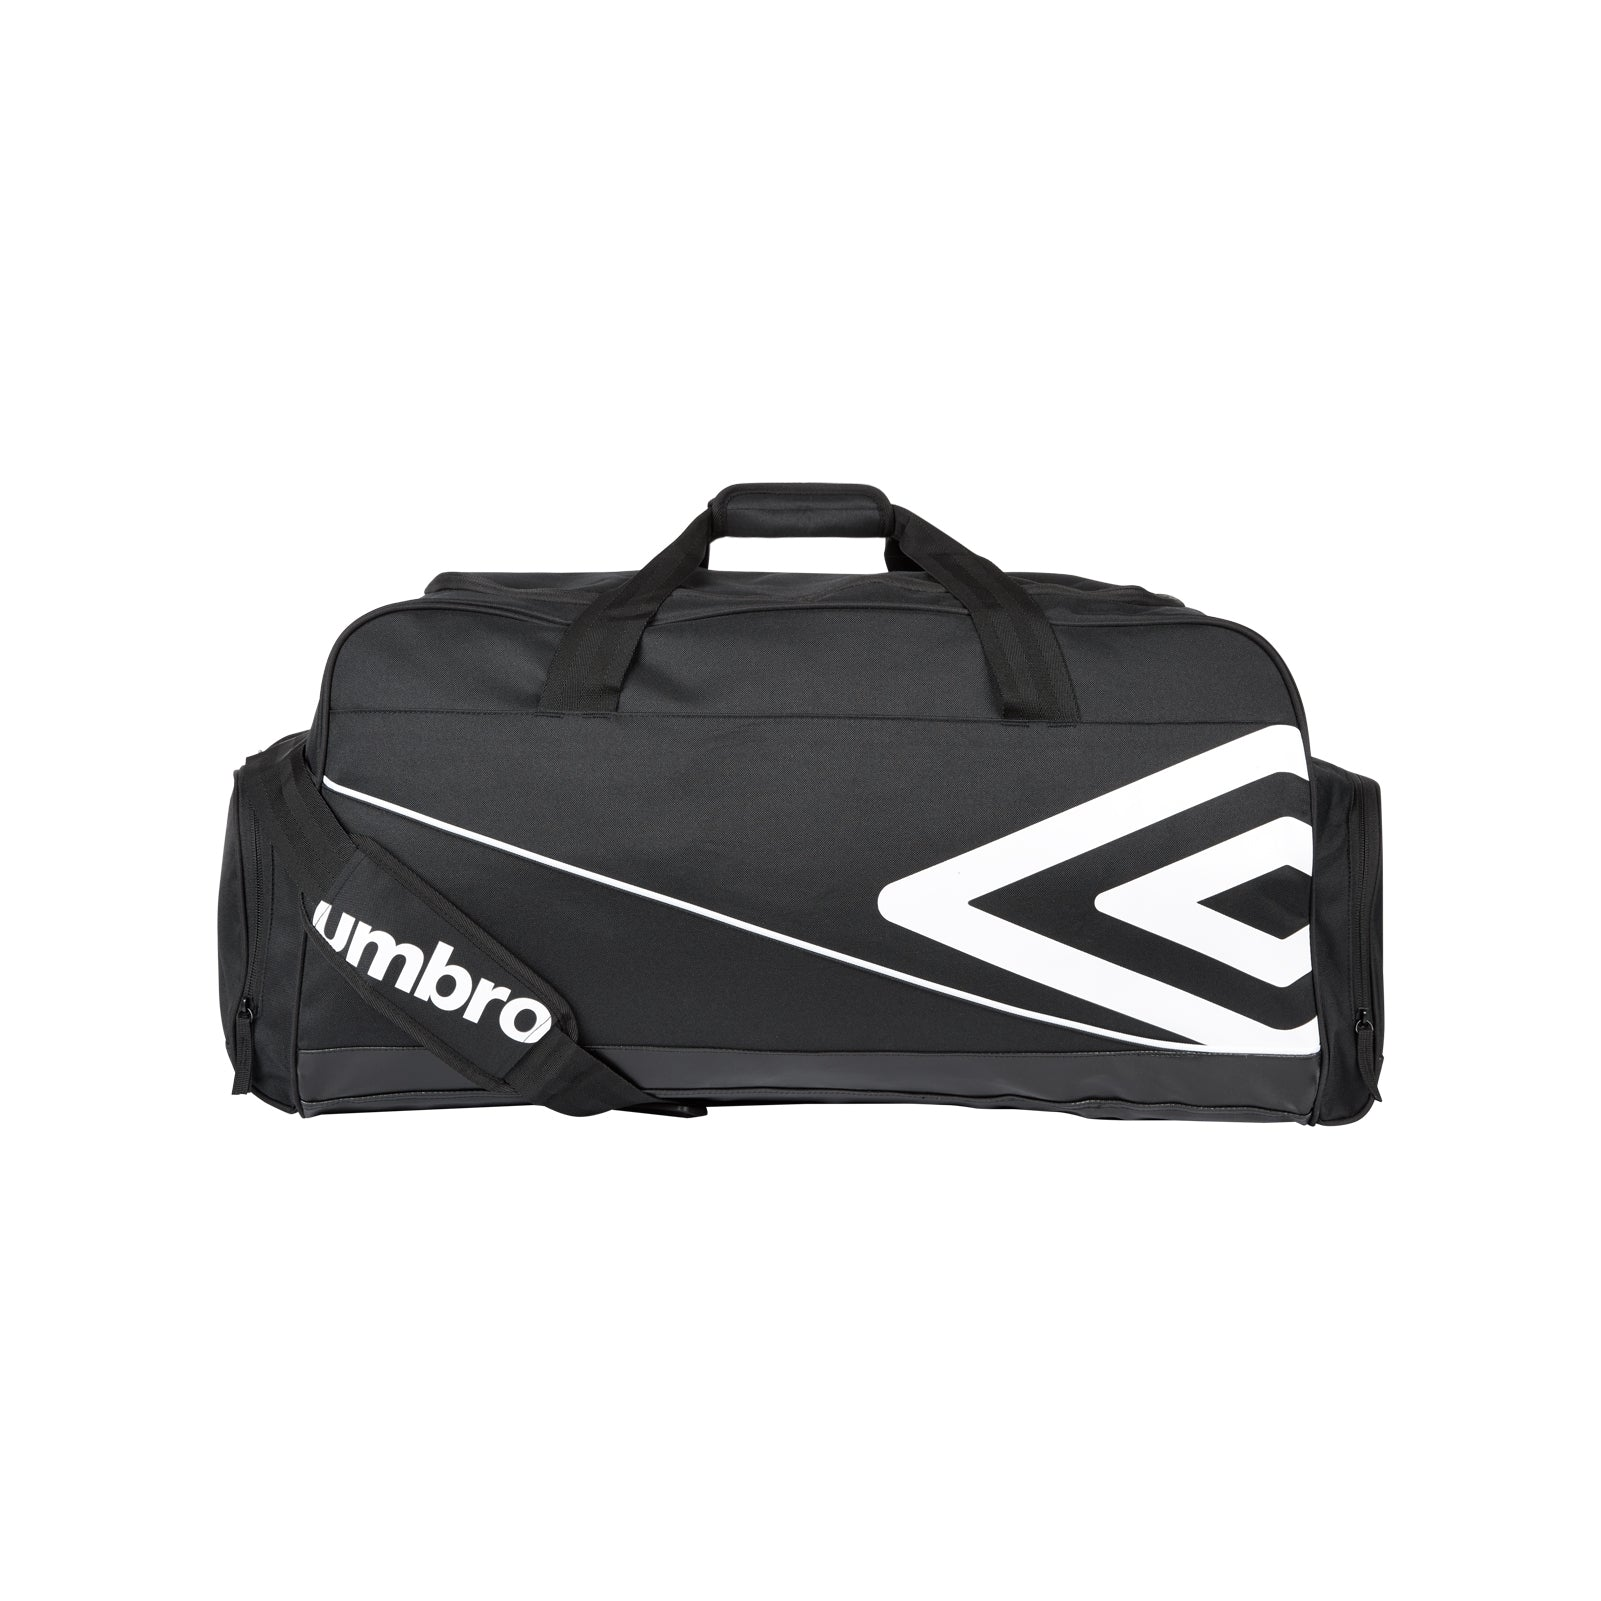 Black Umbro Pro Training Holdall in black with large white double diamond logo, and 2 end pockets